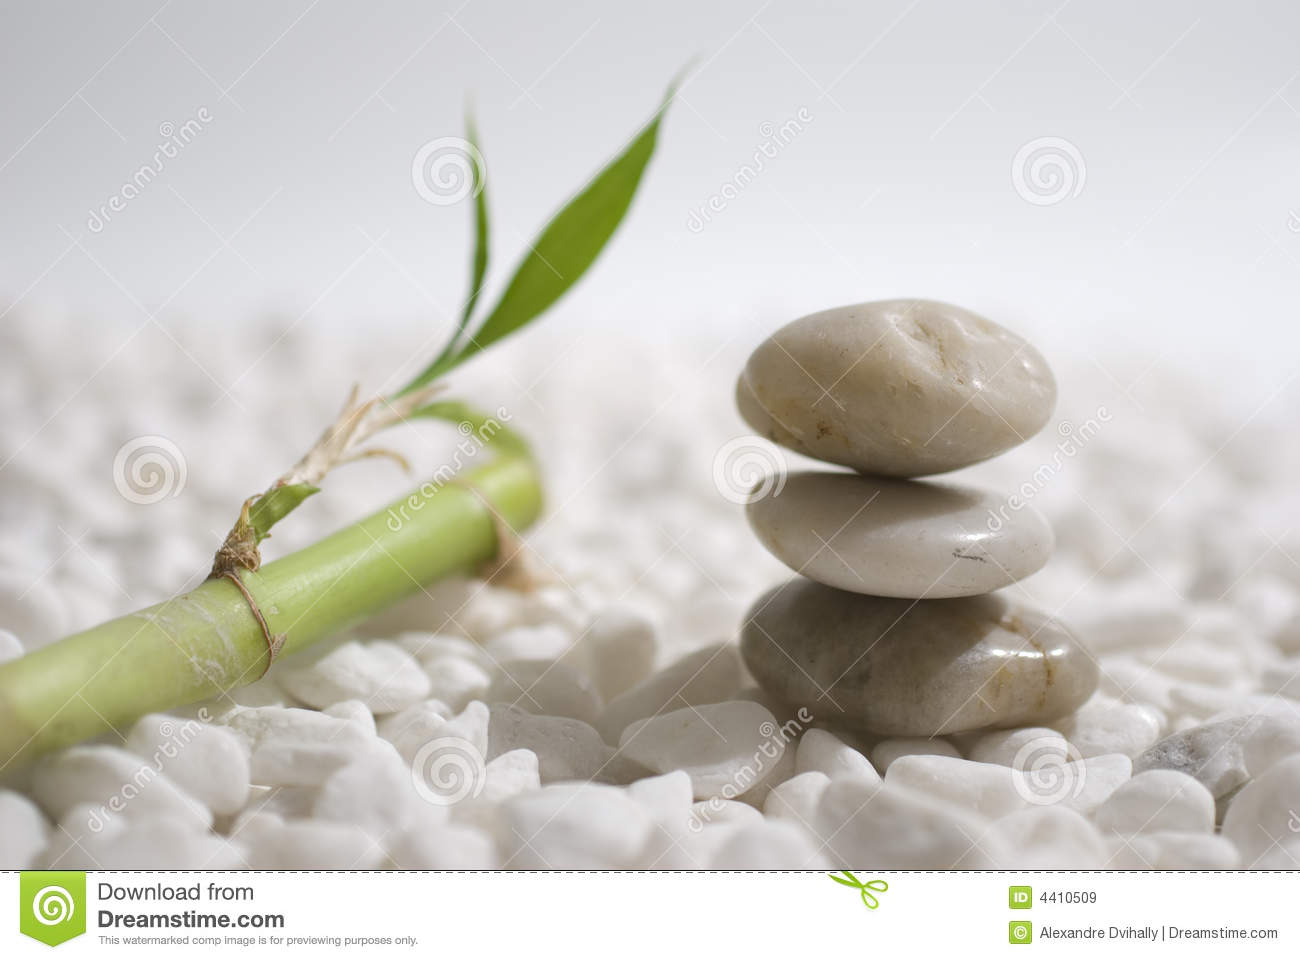 Buddha Iphone 6 Wallpaper Zen Stones And Bamboo Royalty Free Stock Images Image